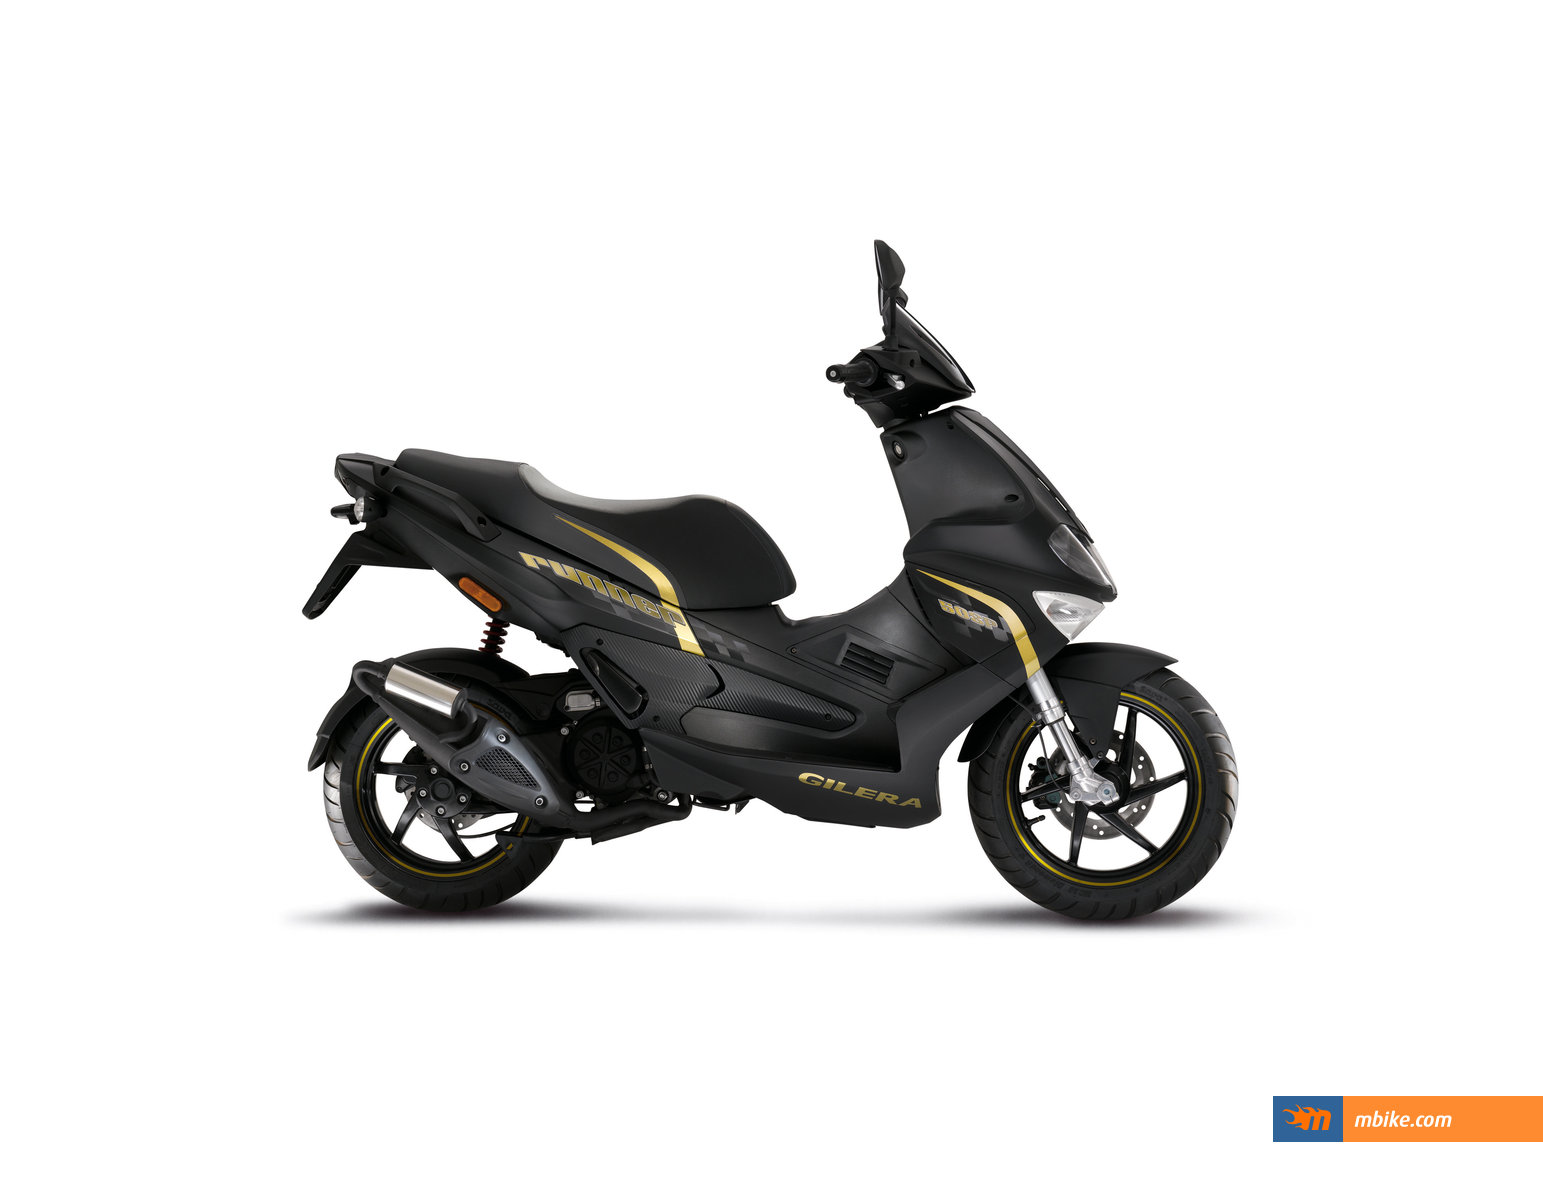 Gilera Runner 50 Black Soul 2015 images #76480